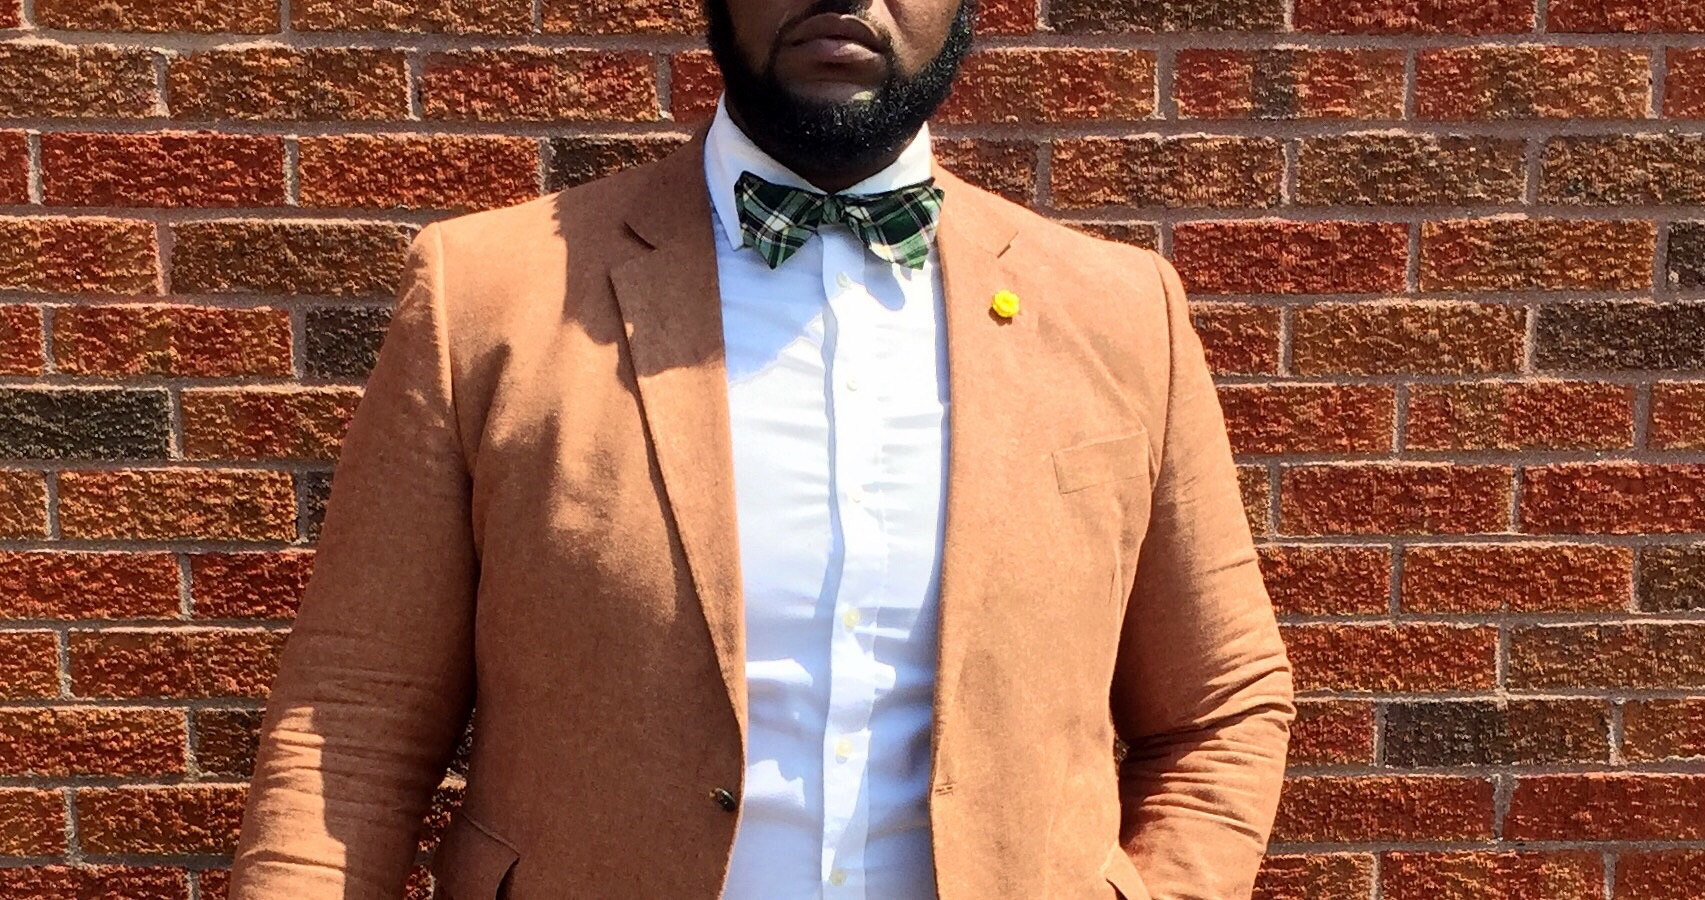 The Look Details:  Blazer: byStafford from  here   Bow Tie: by Tommy Hillfigure from TJ Maxx  similar    Pants: by   Ralph   Lauren   from Marshall's  similar   Shoes: by Stacy Adams  here    Hat: from Arth Hat Store in Soho, NY  similar    Watch: from Target  here    Travel Bag: from Aldo  here   Lapel Pin: ShopThe Big Fashion Guy (link above in shop)